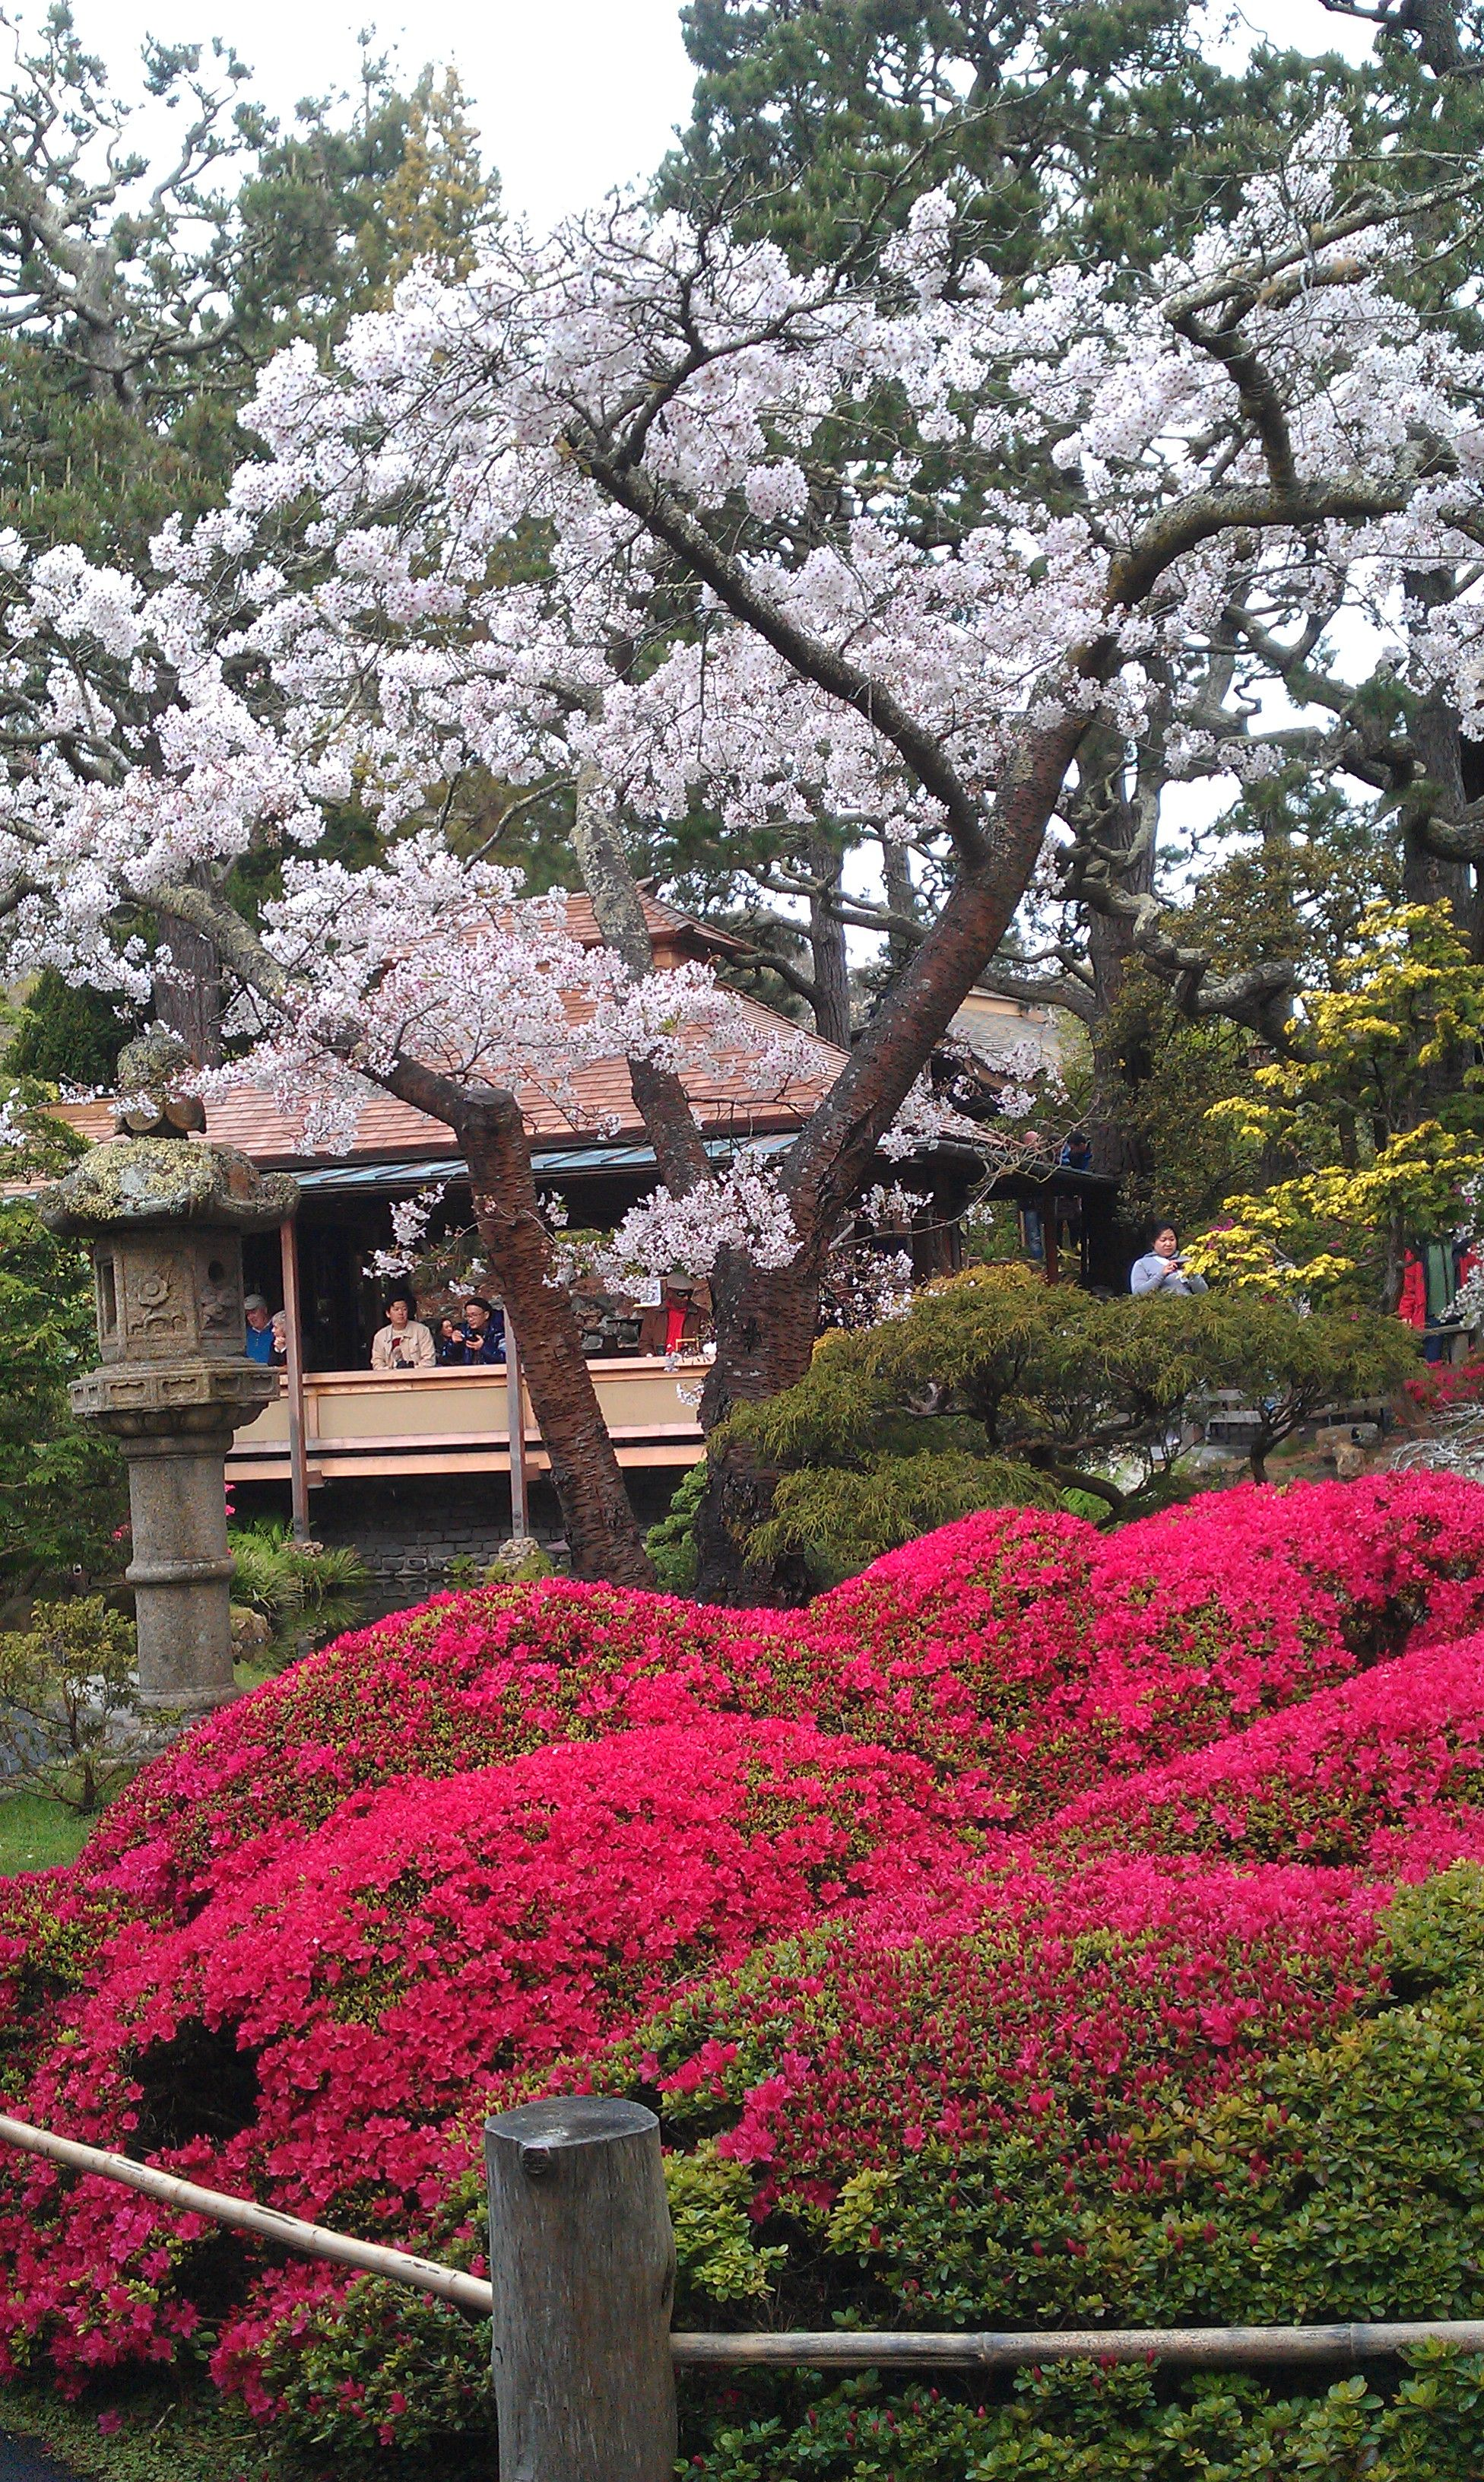 Japanischer Ahorn Wallpaper Cherry Blossoms In Bloom At Japanese Tea Garden In Golden Gate